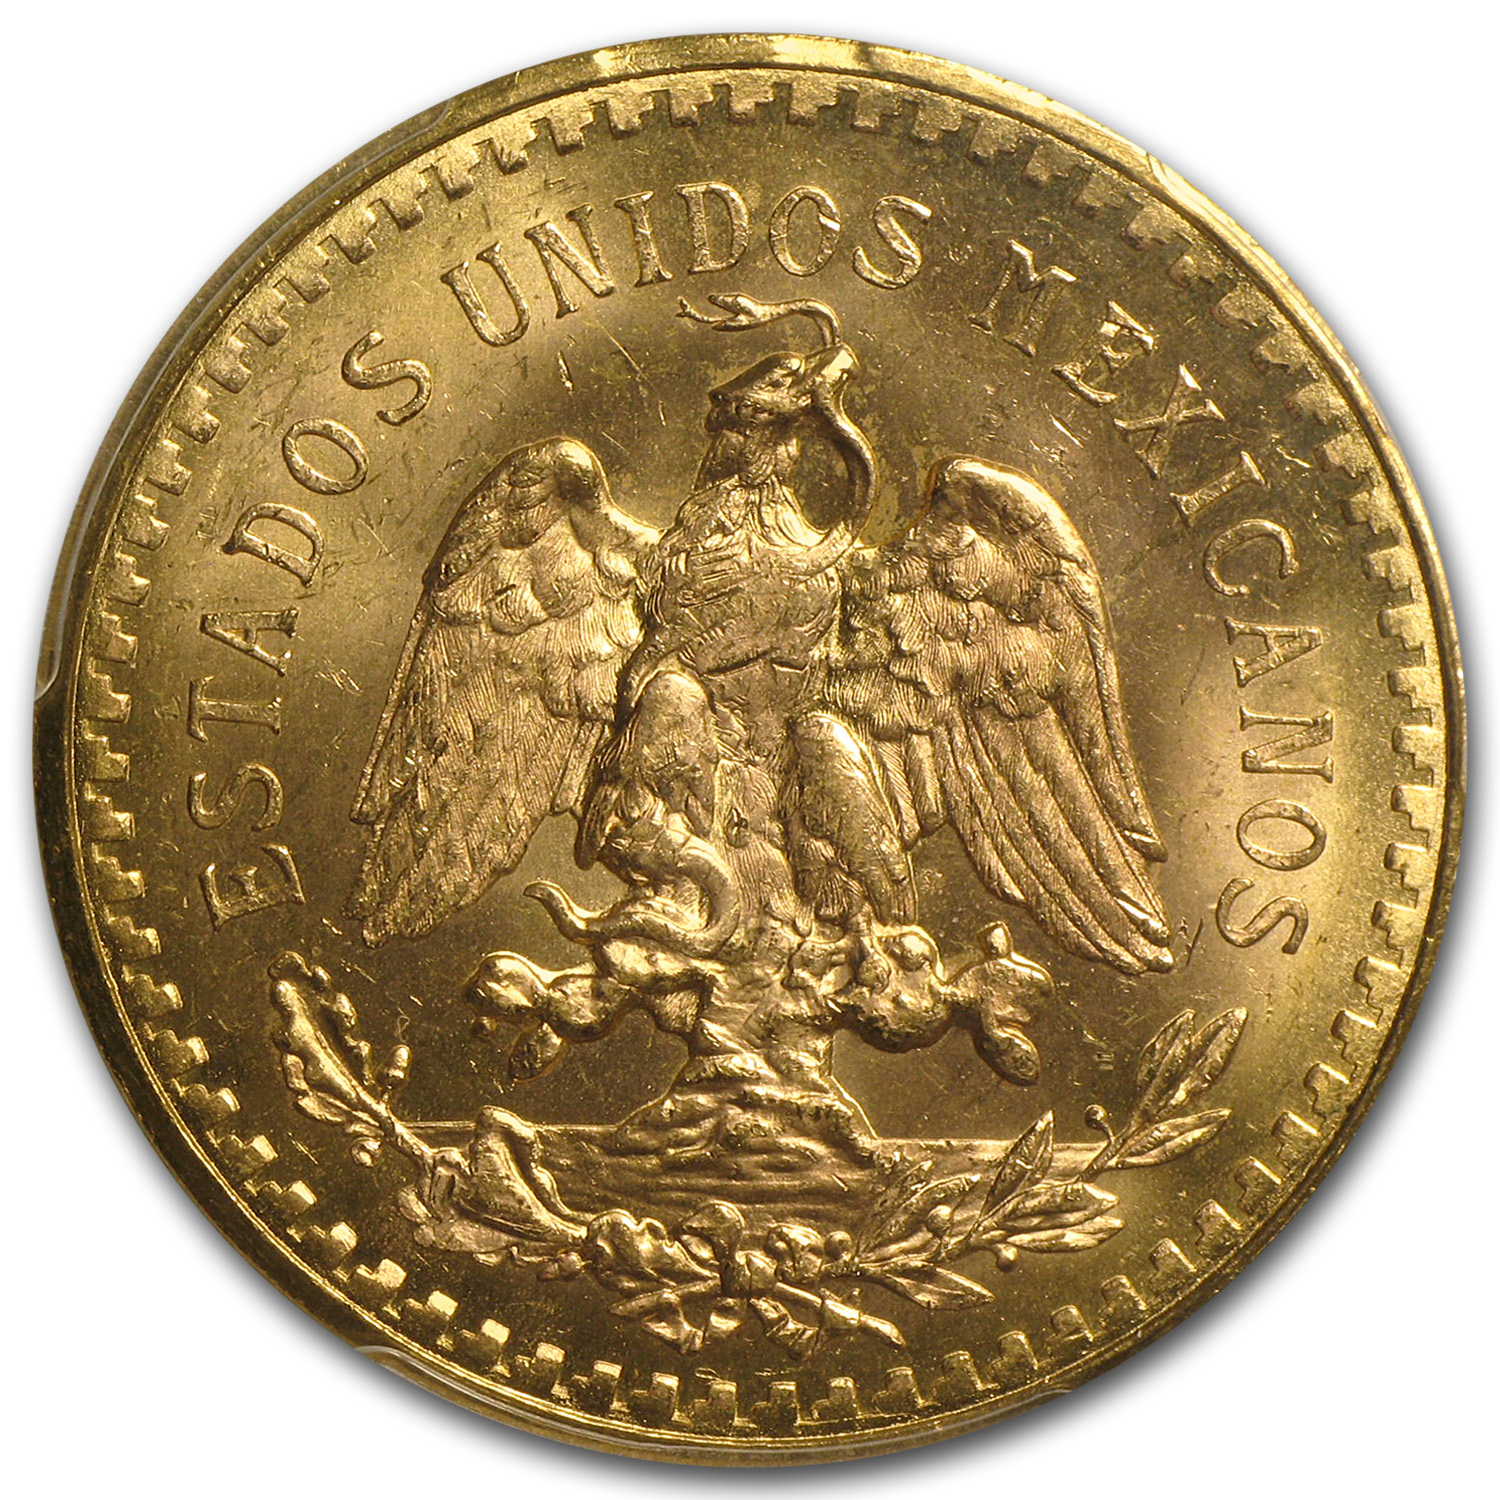 Mexico 1930 50 Pesos Gold Coin - MS-63 PCGS (Secure Plus!)